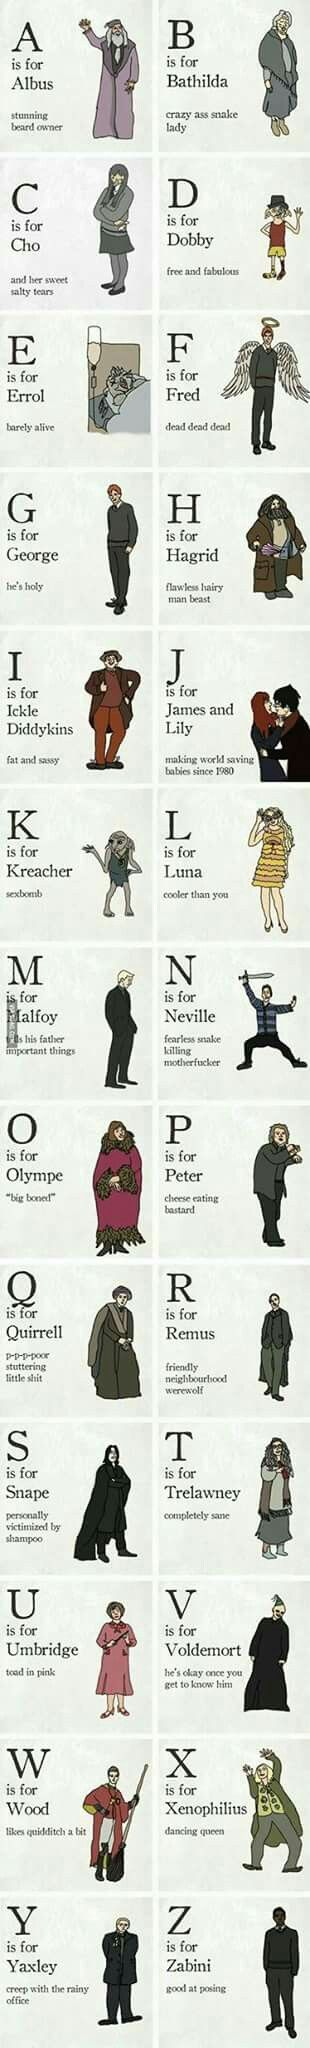 Harry Potter ABC's